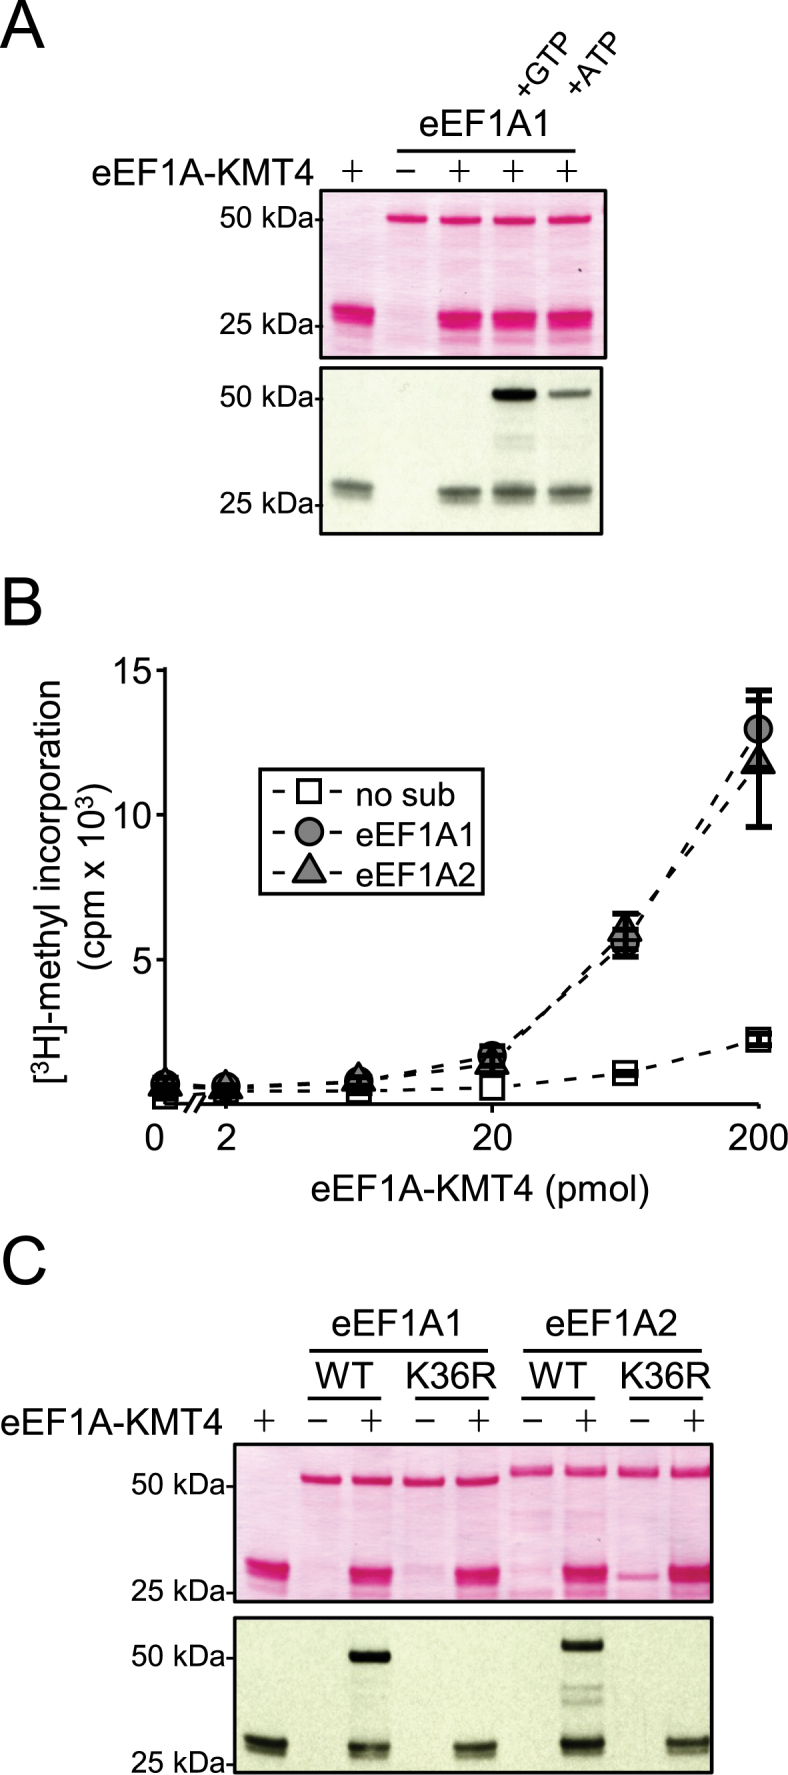 eEF1A-KMT4-mediated methylation of K36 in eEF1A proteins in vitro . ( A ) Nucleotide-dependent methylation of recombinant eEF1A1 by eEF1A-KMT4. Recombinant eEF1A1 was incubated with [ 3 H]-AdoMet and eEF1A-KMT4, as well as with adenosinetriphosphate (ATP) or GTP as indicated. Top, Ponceau S stained membrane of proteins. Bottom, visualization of methylation by fluorography of membrane in upper panel. ( B ) Comparison of eEF1A1 and eEF1A2 as substrates for eEF1A-KMT4-mediated methylation. Recombinant eEF1A1 or eEF1A2 was incubated with varying amounts of eEF1A-KMT4. Methylation was quantified as trichloroacetic acid (TCA)-insoluble radioactivity. Error bars represent the standard deviation ( n = 3). ( C ) Evaluation of eEF1A point mutants as substrates for eEF1A-KMT4-mediated methylation. WT eEF1A1 and eEF1A2 or the corresponding Lys36→Arg (K36R) mutant proteins were incubated with recombinant eEF1A-KMT4 in the presence of [ 3 H]-AdoMet. Reactions were analyzed as in (A). Note: In panels (A) and (C), automethylation of recombinant eEF1A-KMT4 is observed, but such automethylation was not observed in the experiments shown in Figure 2A , B and D . This apparent discrepancy is likely because less enzyme and of lower specific activity, was used in Figure 2 .